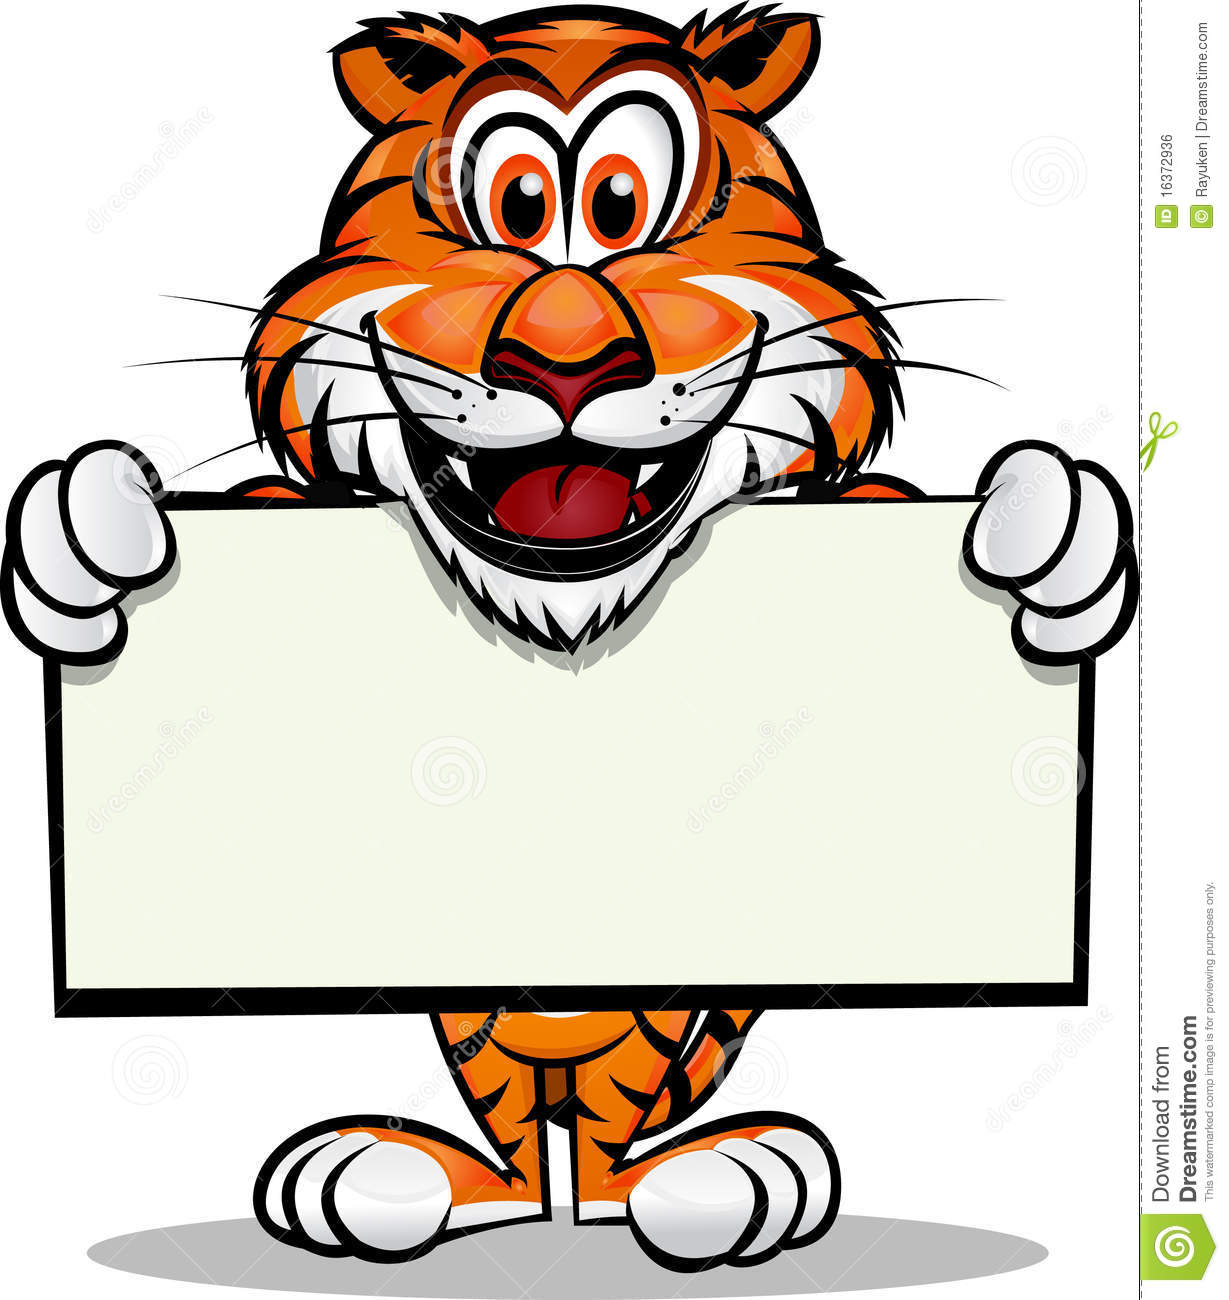 Cute Tiger Holding Sign Royalty Free Stock Image - Image: 16372936